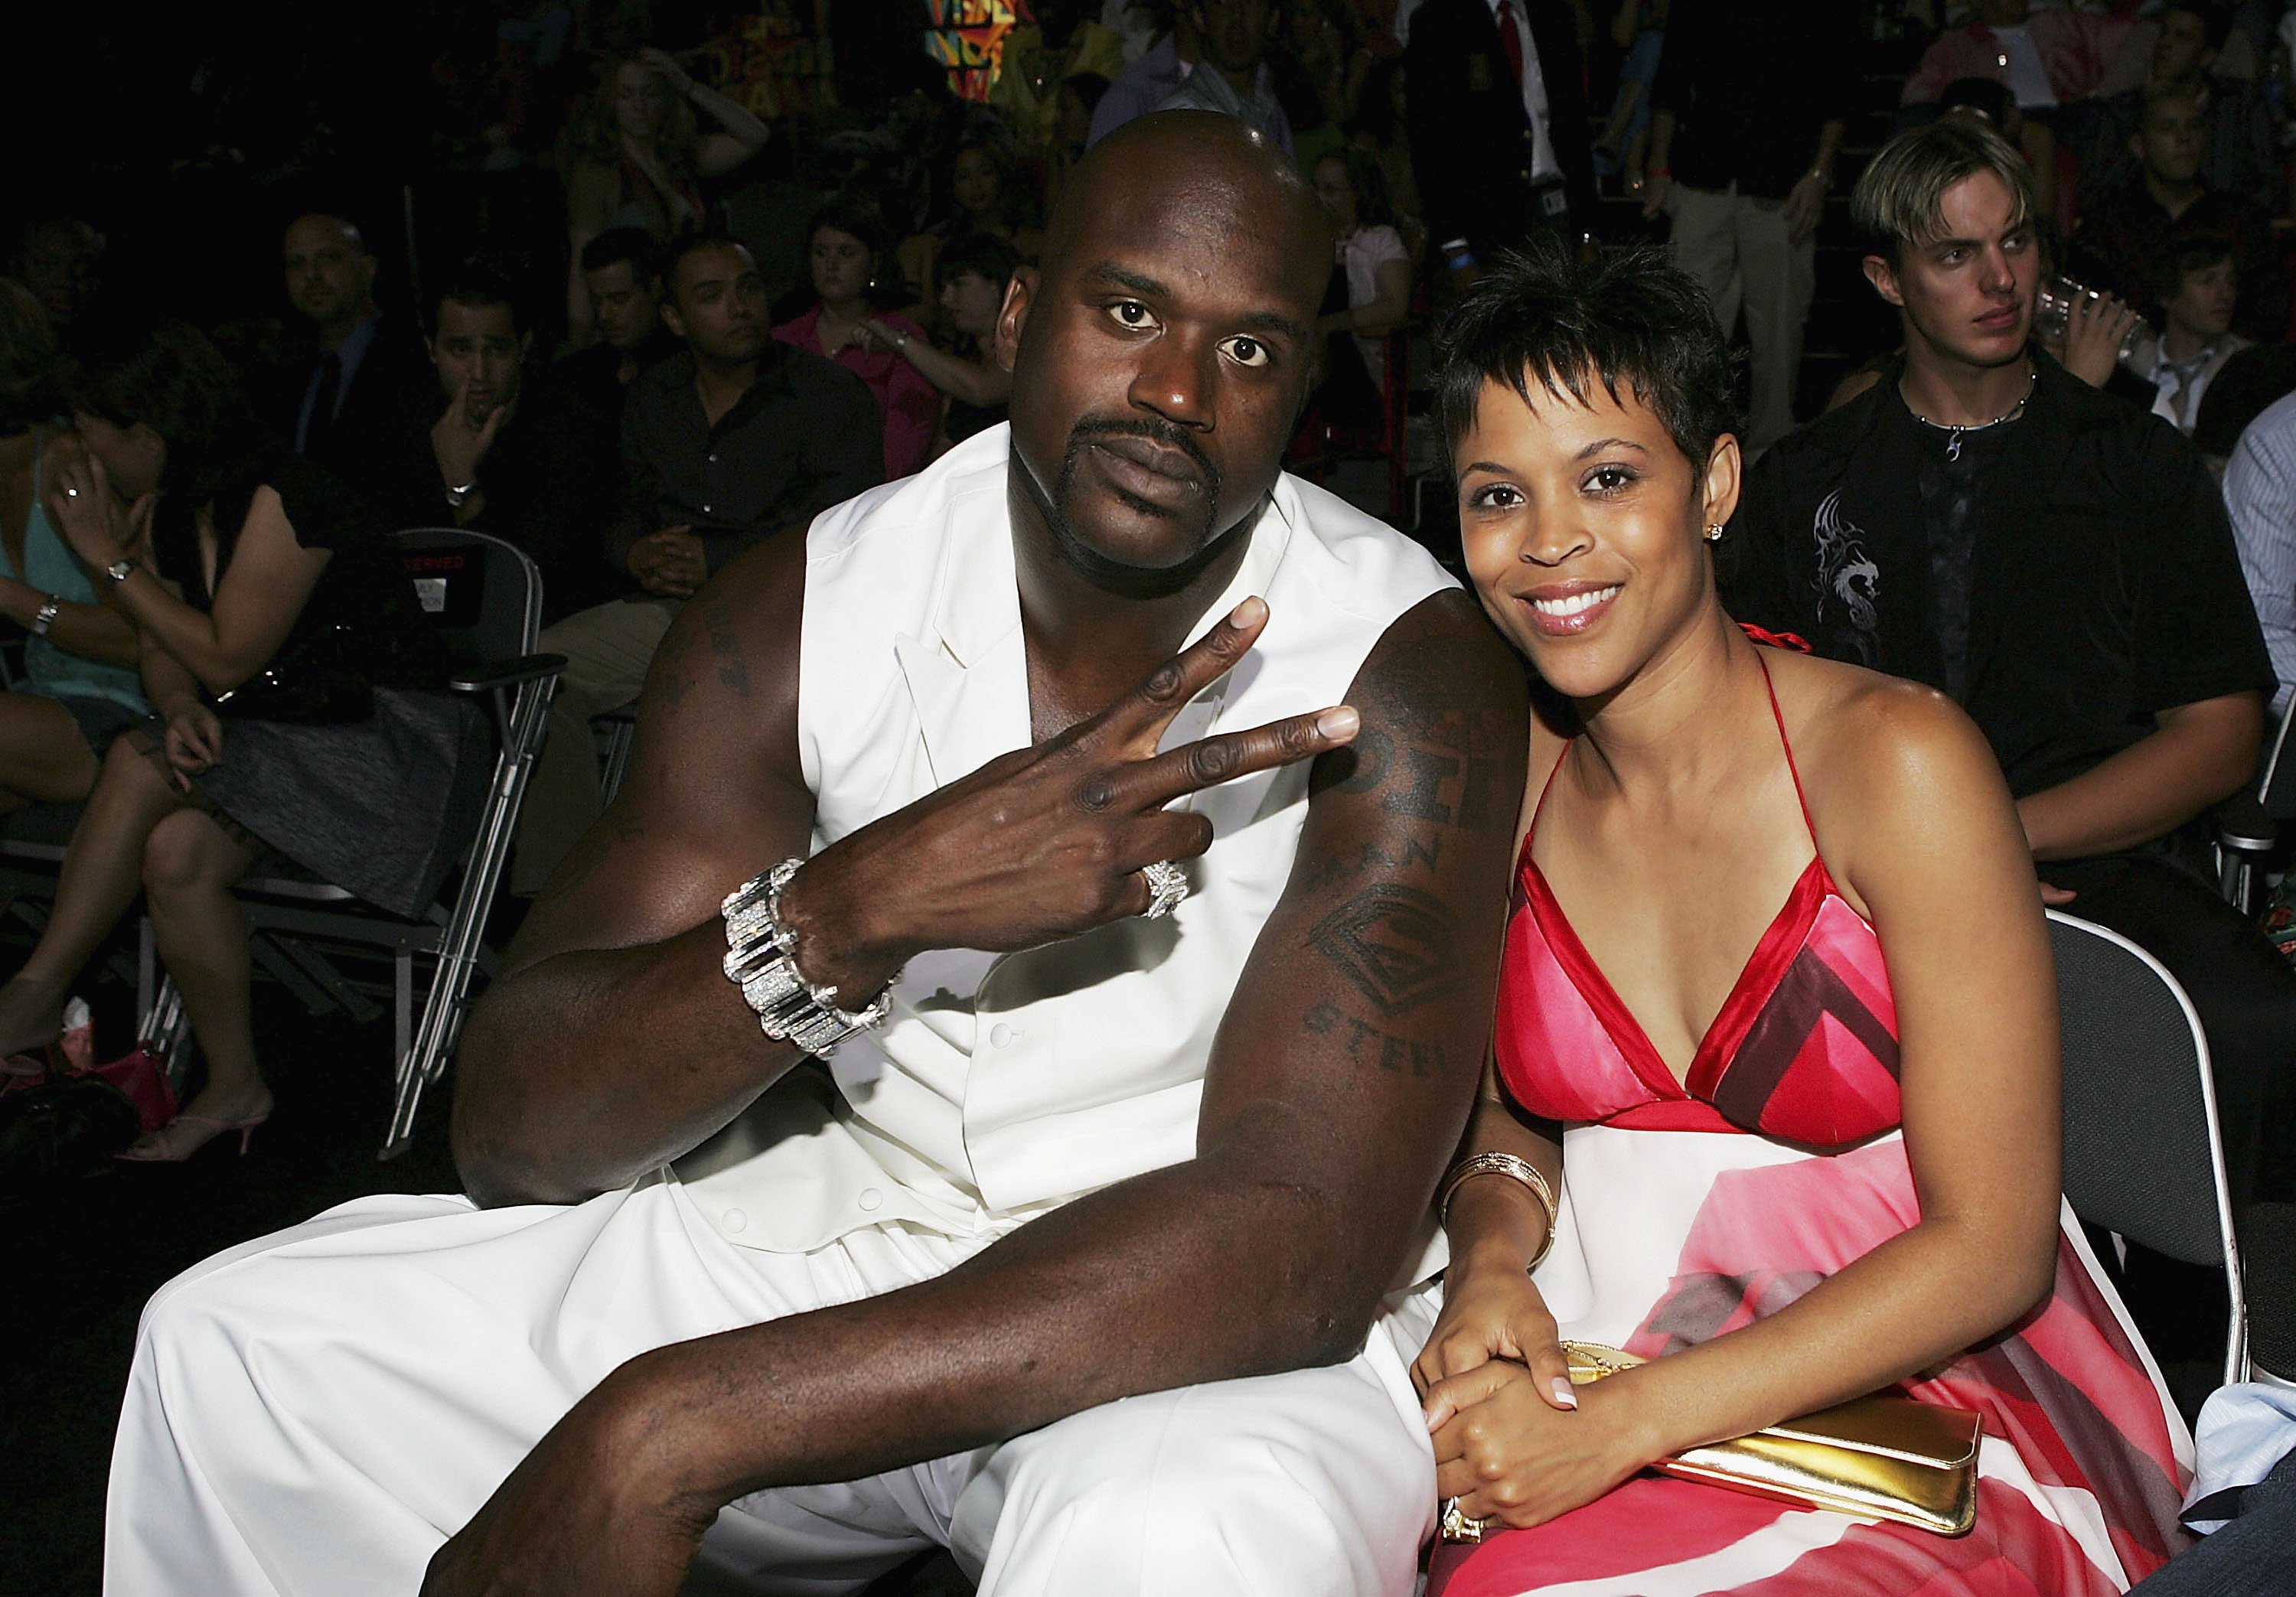 Shaquille O'Neal and Shaunie O'Neal at the 2004 MTV Video Music Awards. | Photo: GettyImages/Global Images of Ukraine